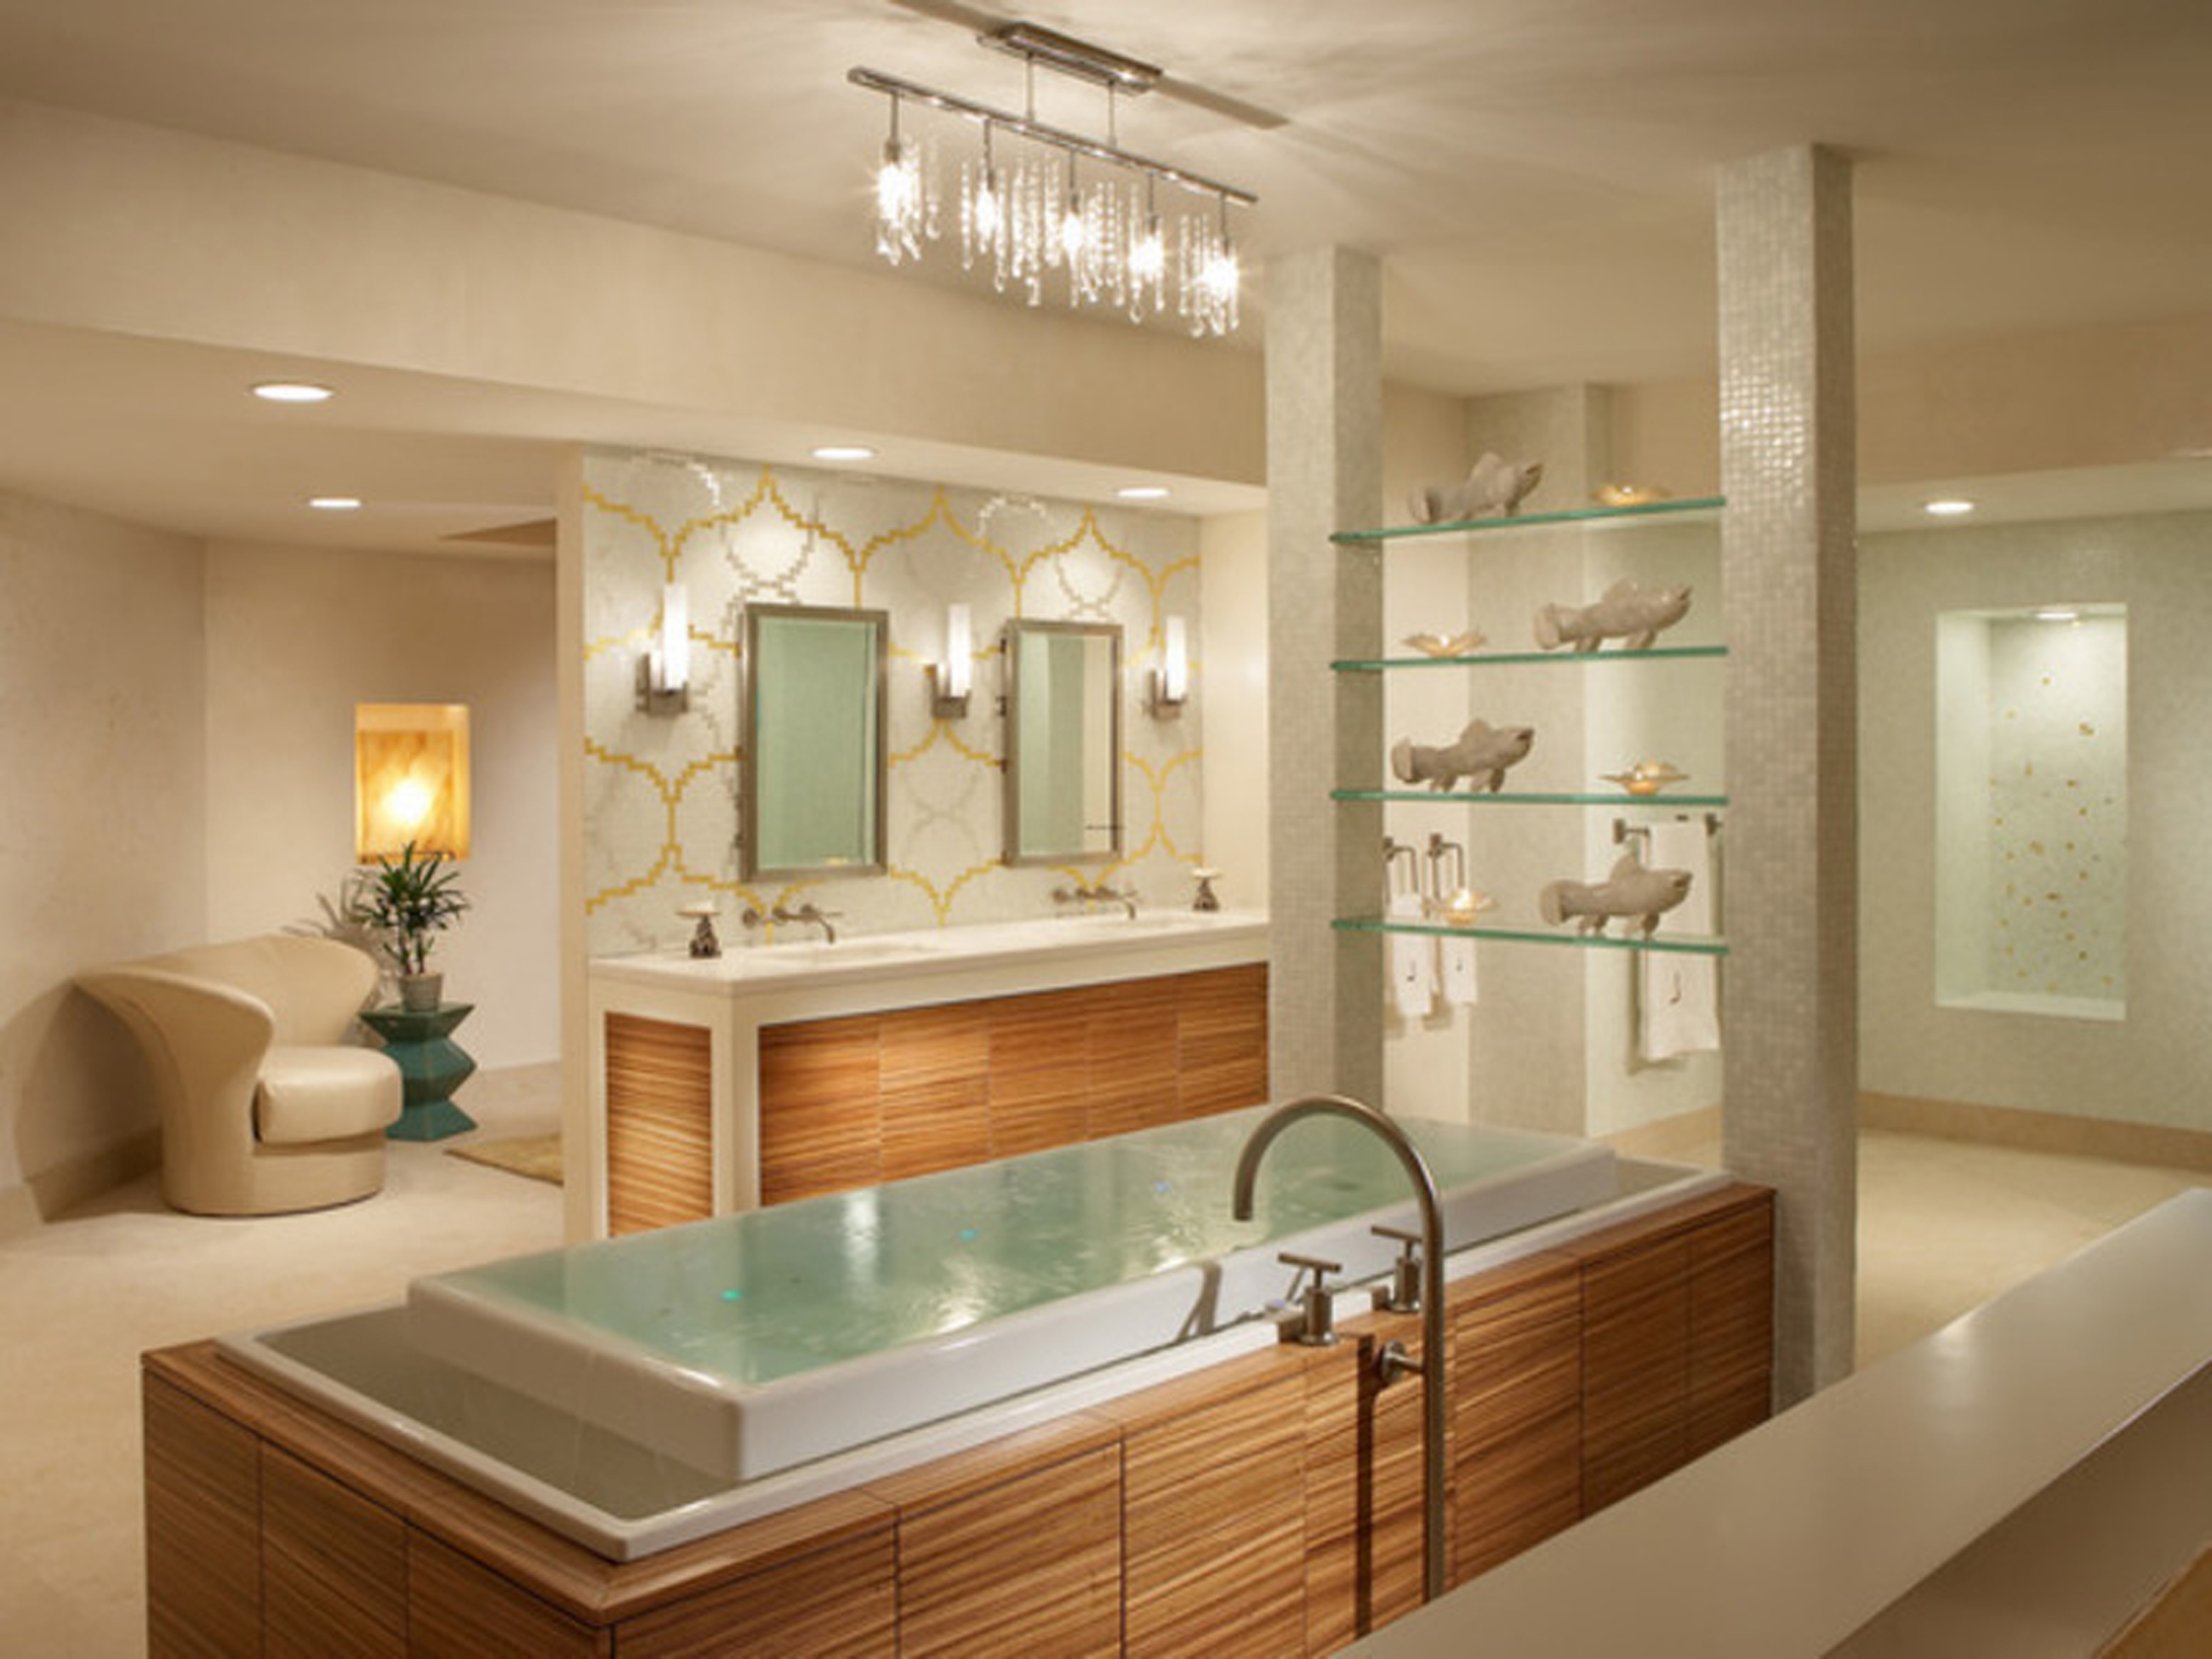 Spa Bathroom Design Ideas For Your Home Design (Image 28 of 28)